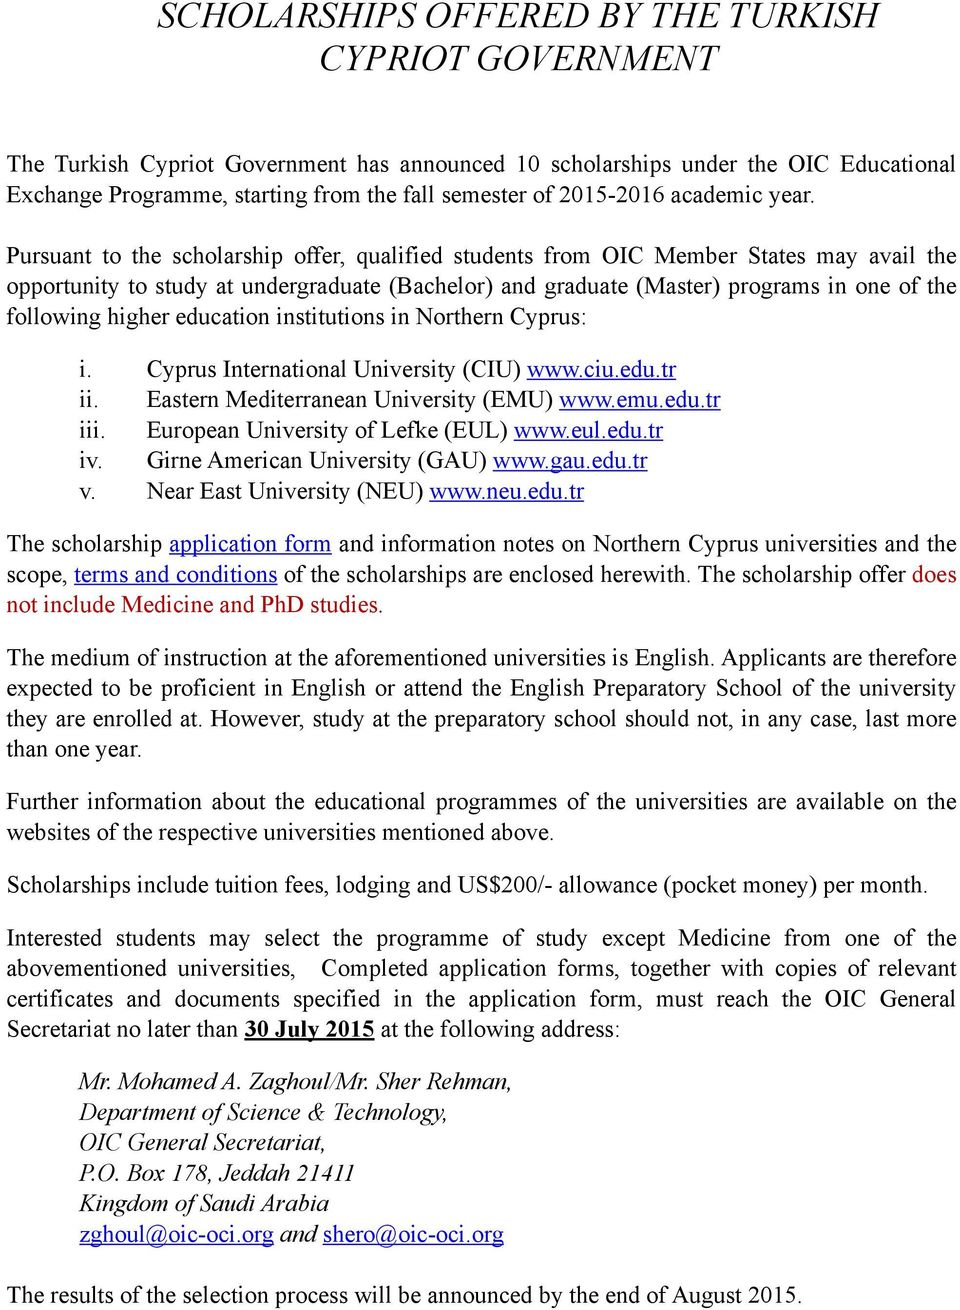 scholarships offered by the turkish cypriot government pdf